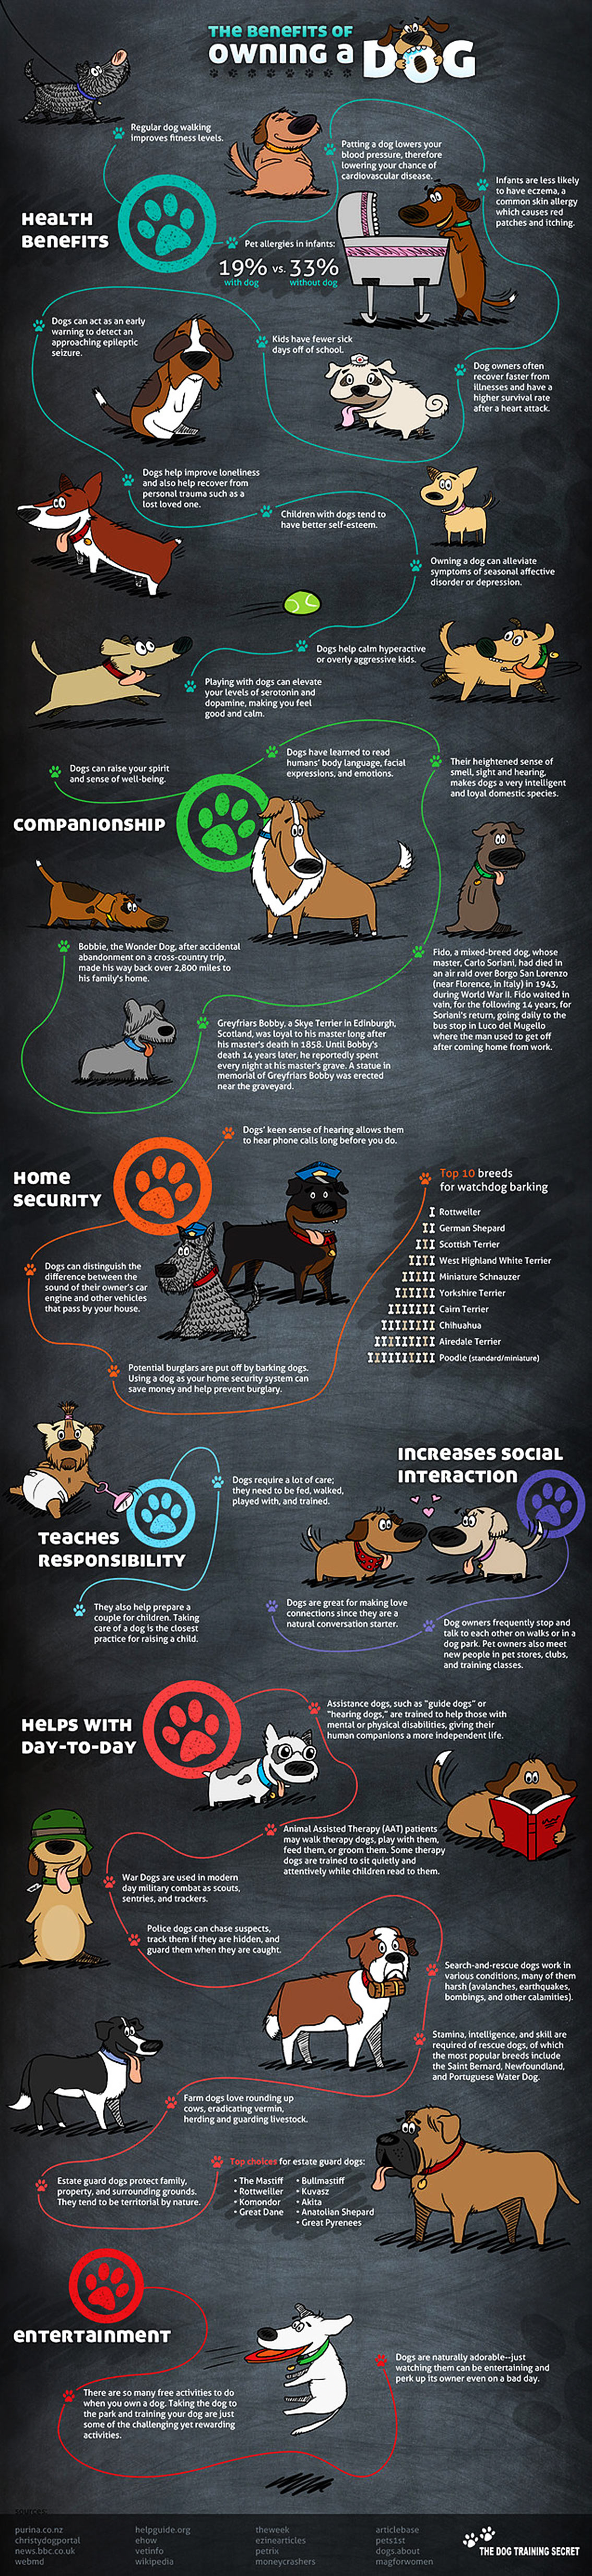 38 Reasons for Owning a Dog - Pet infographic